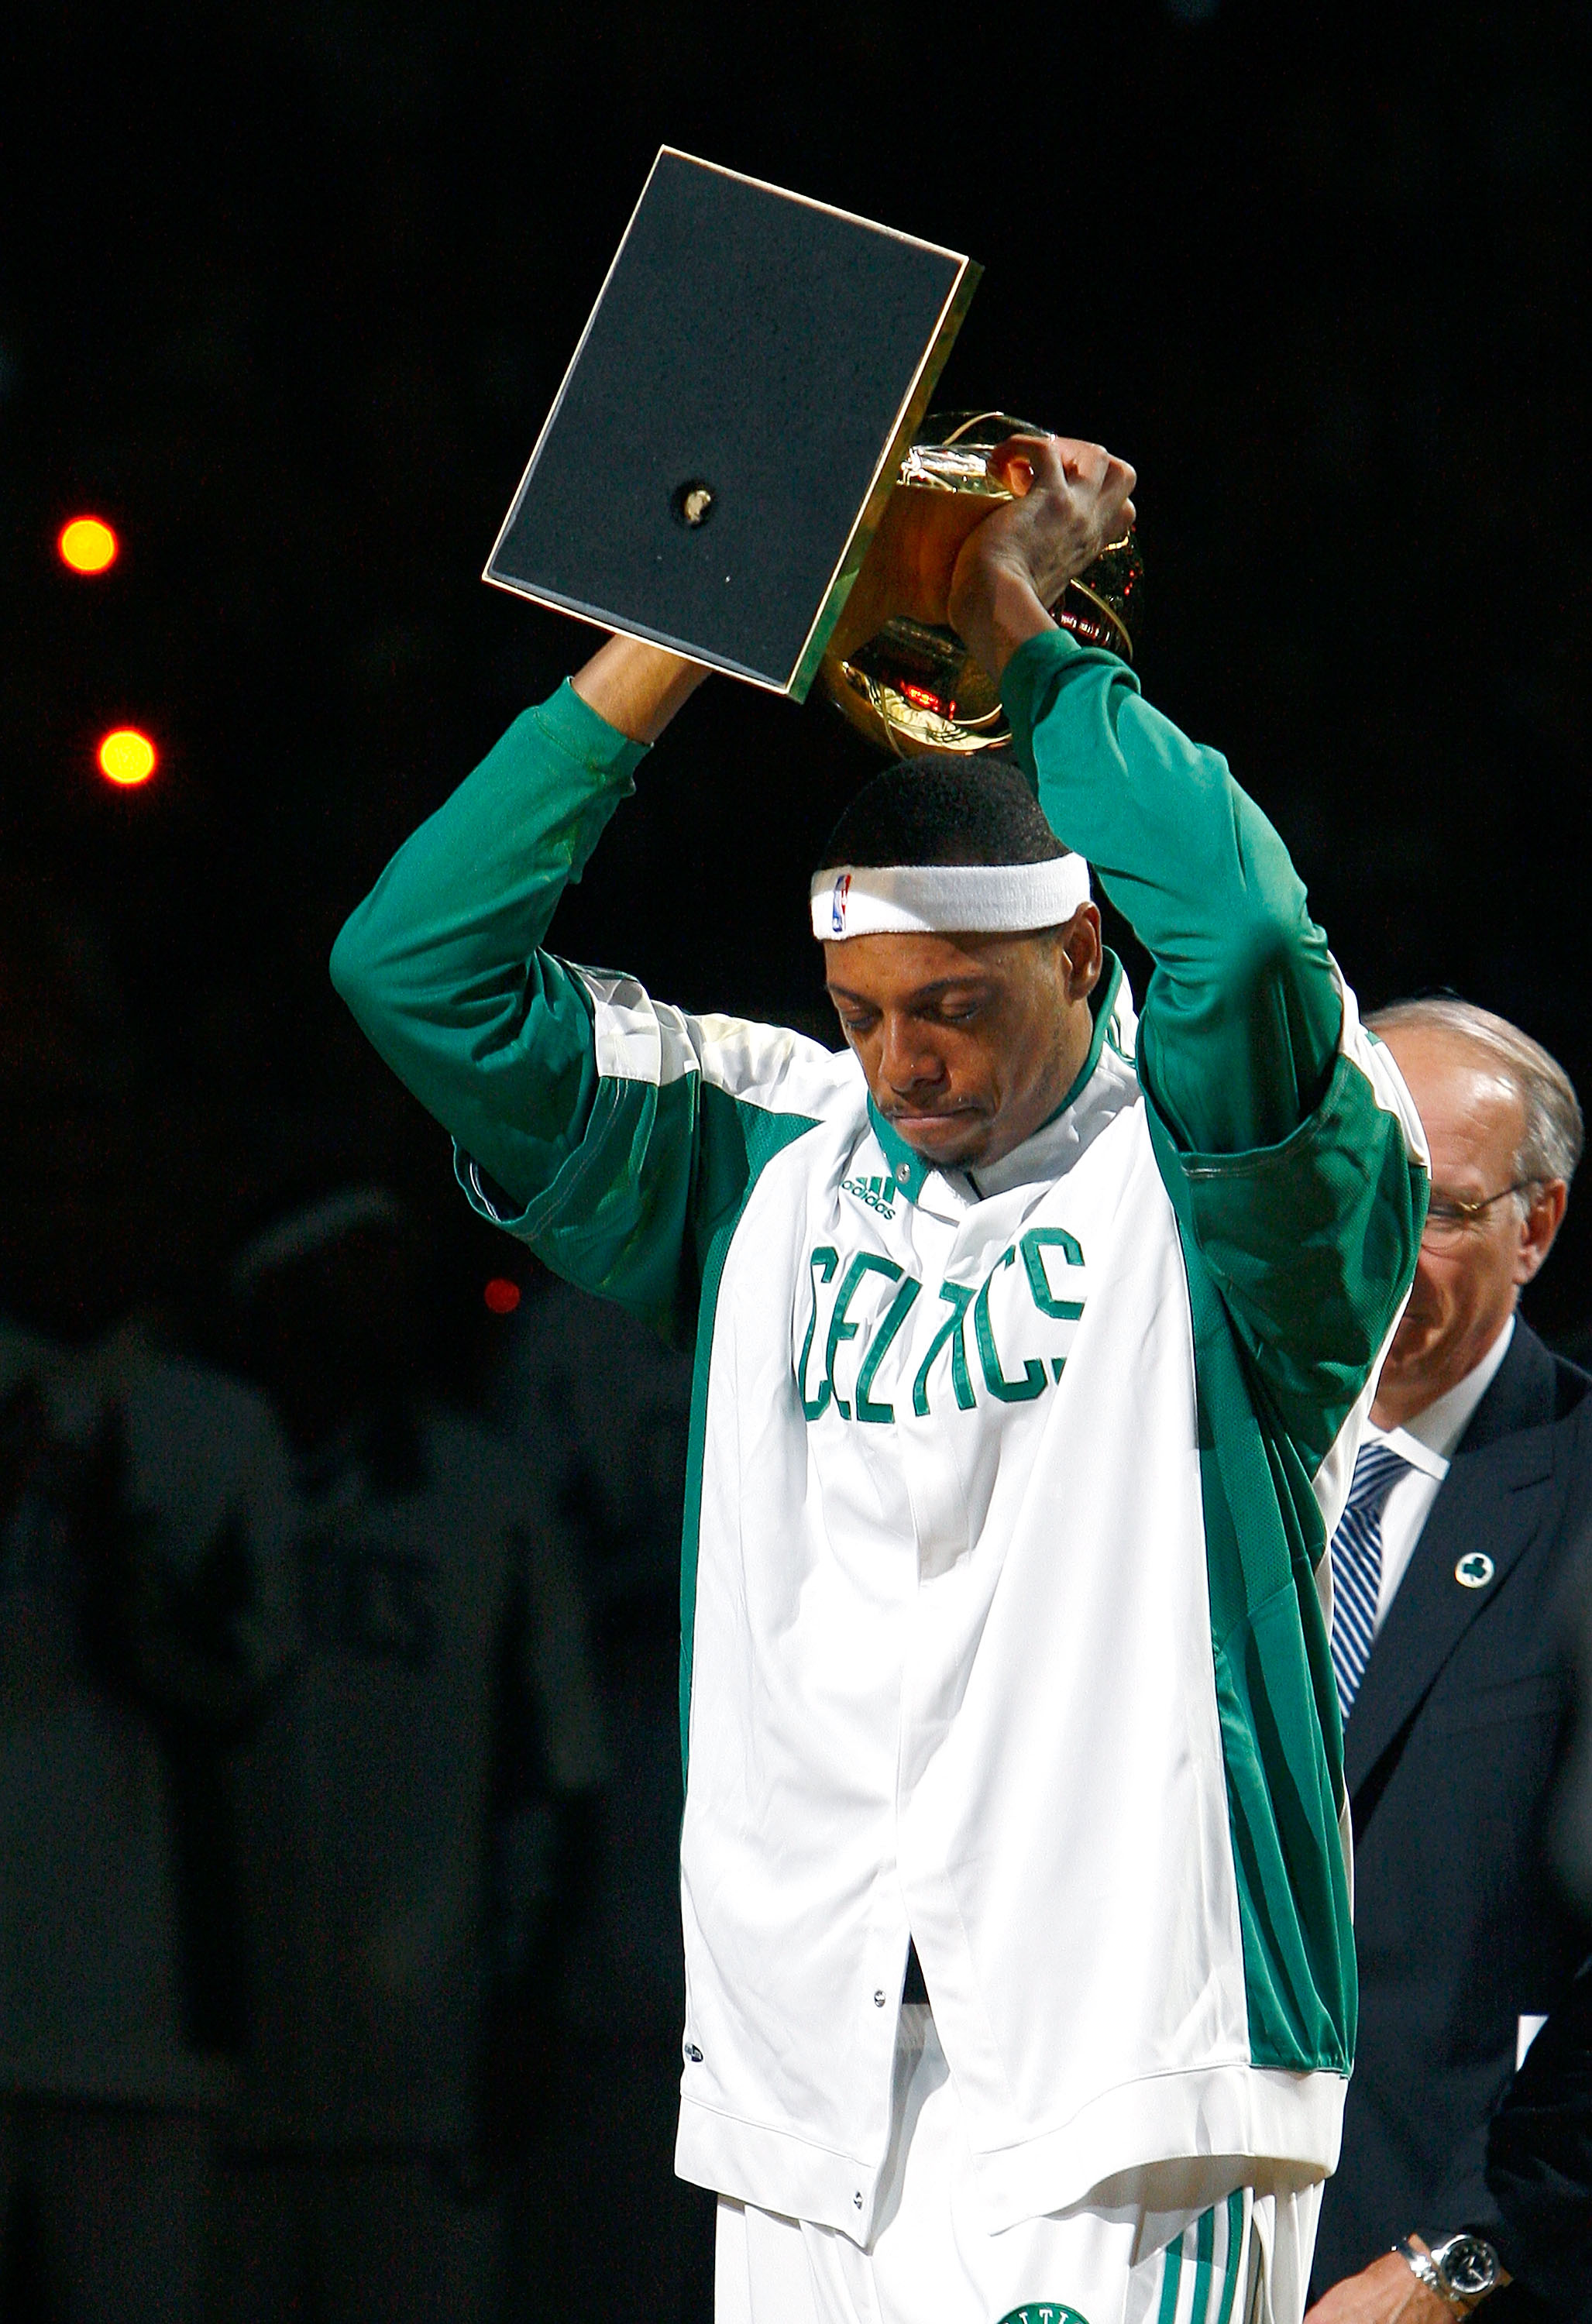 BOSTON, MA - OCTOBER 28: Paul Pierce #34 of the Boston Celtics raise the 2008 World Championship trophy during the 2008 NBA World Championship ceremony before a game against the Cleveland Cavaliersat the TD Banknorth Garden on October 28, 2008 in Boston,